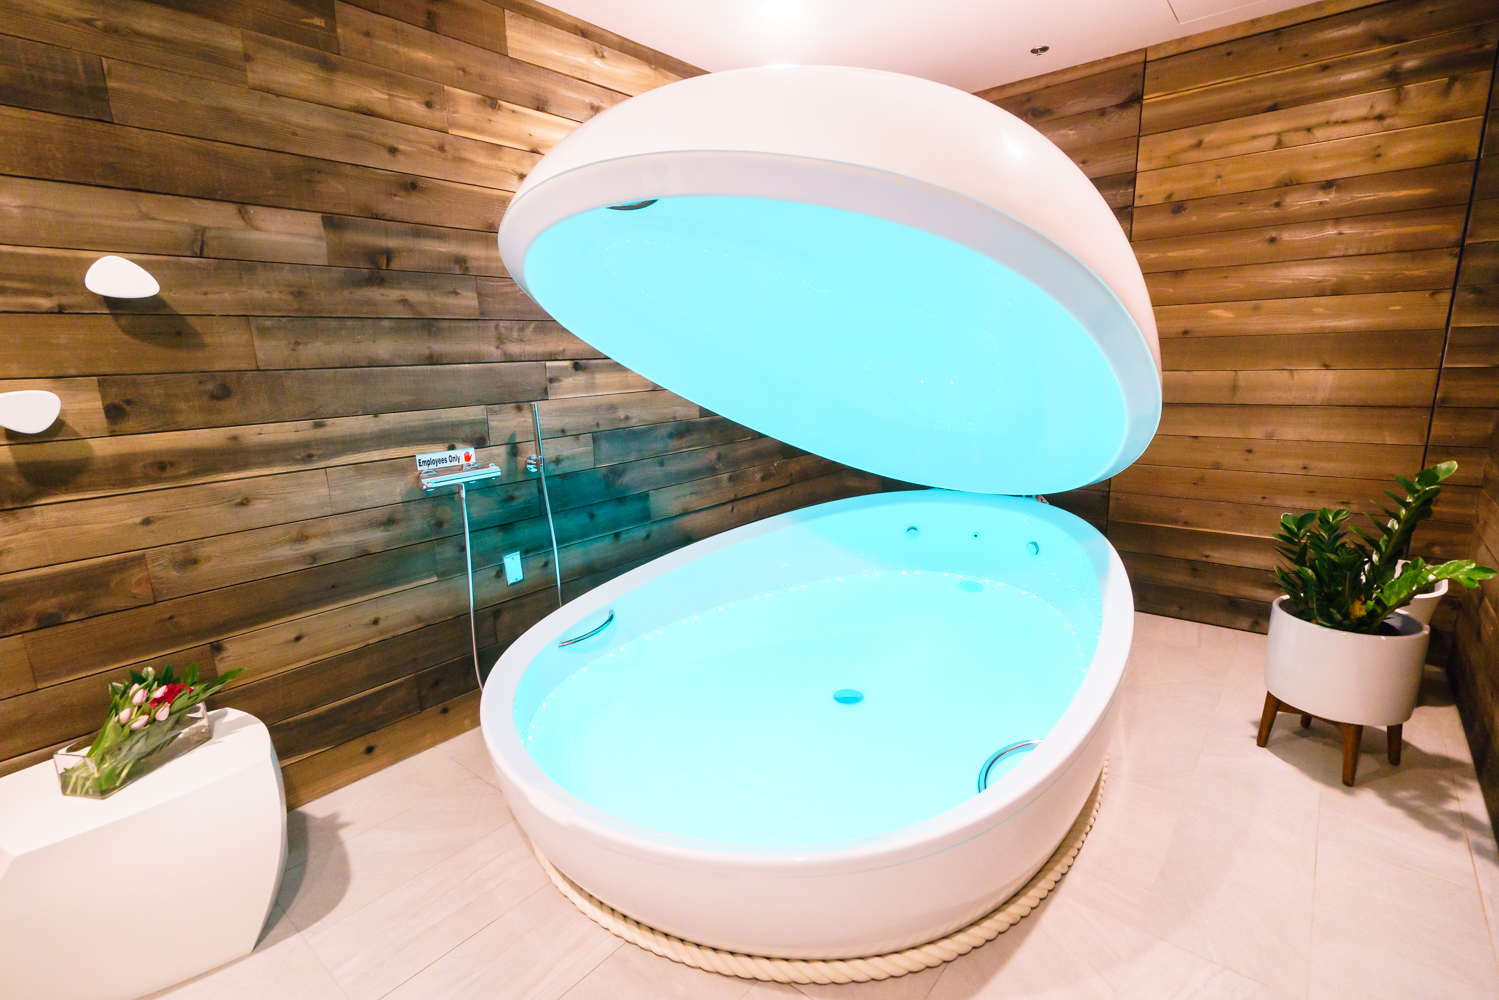 Experience weightless bliss via floating at Soulex, D.C.'s first float spa. (Image: Courtesy Soulex)